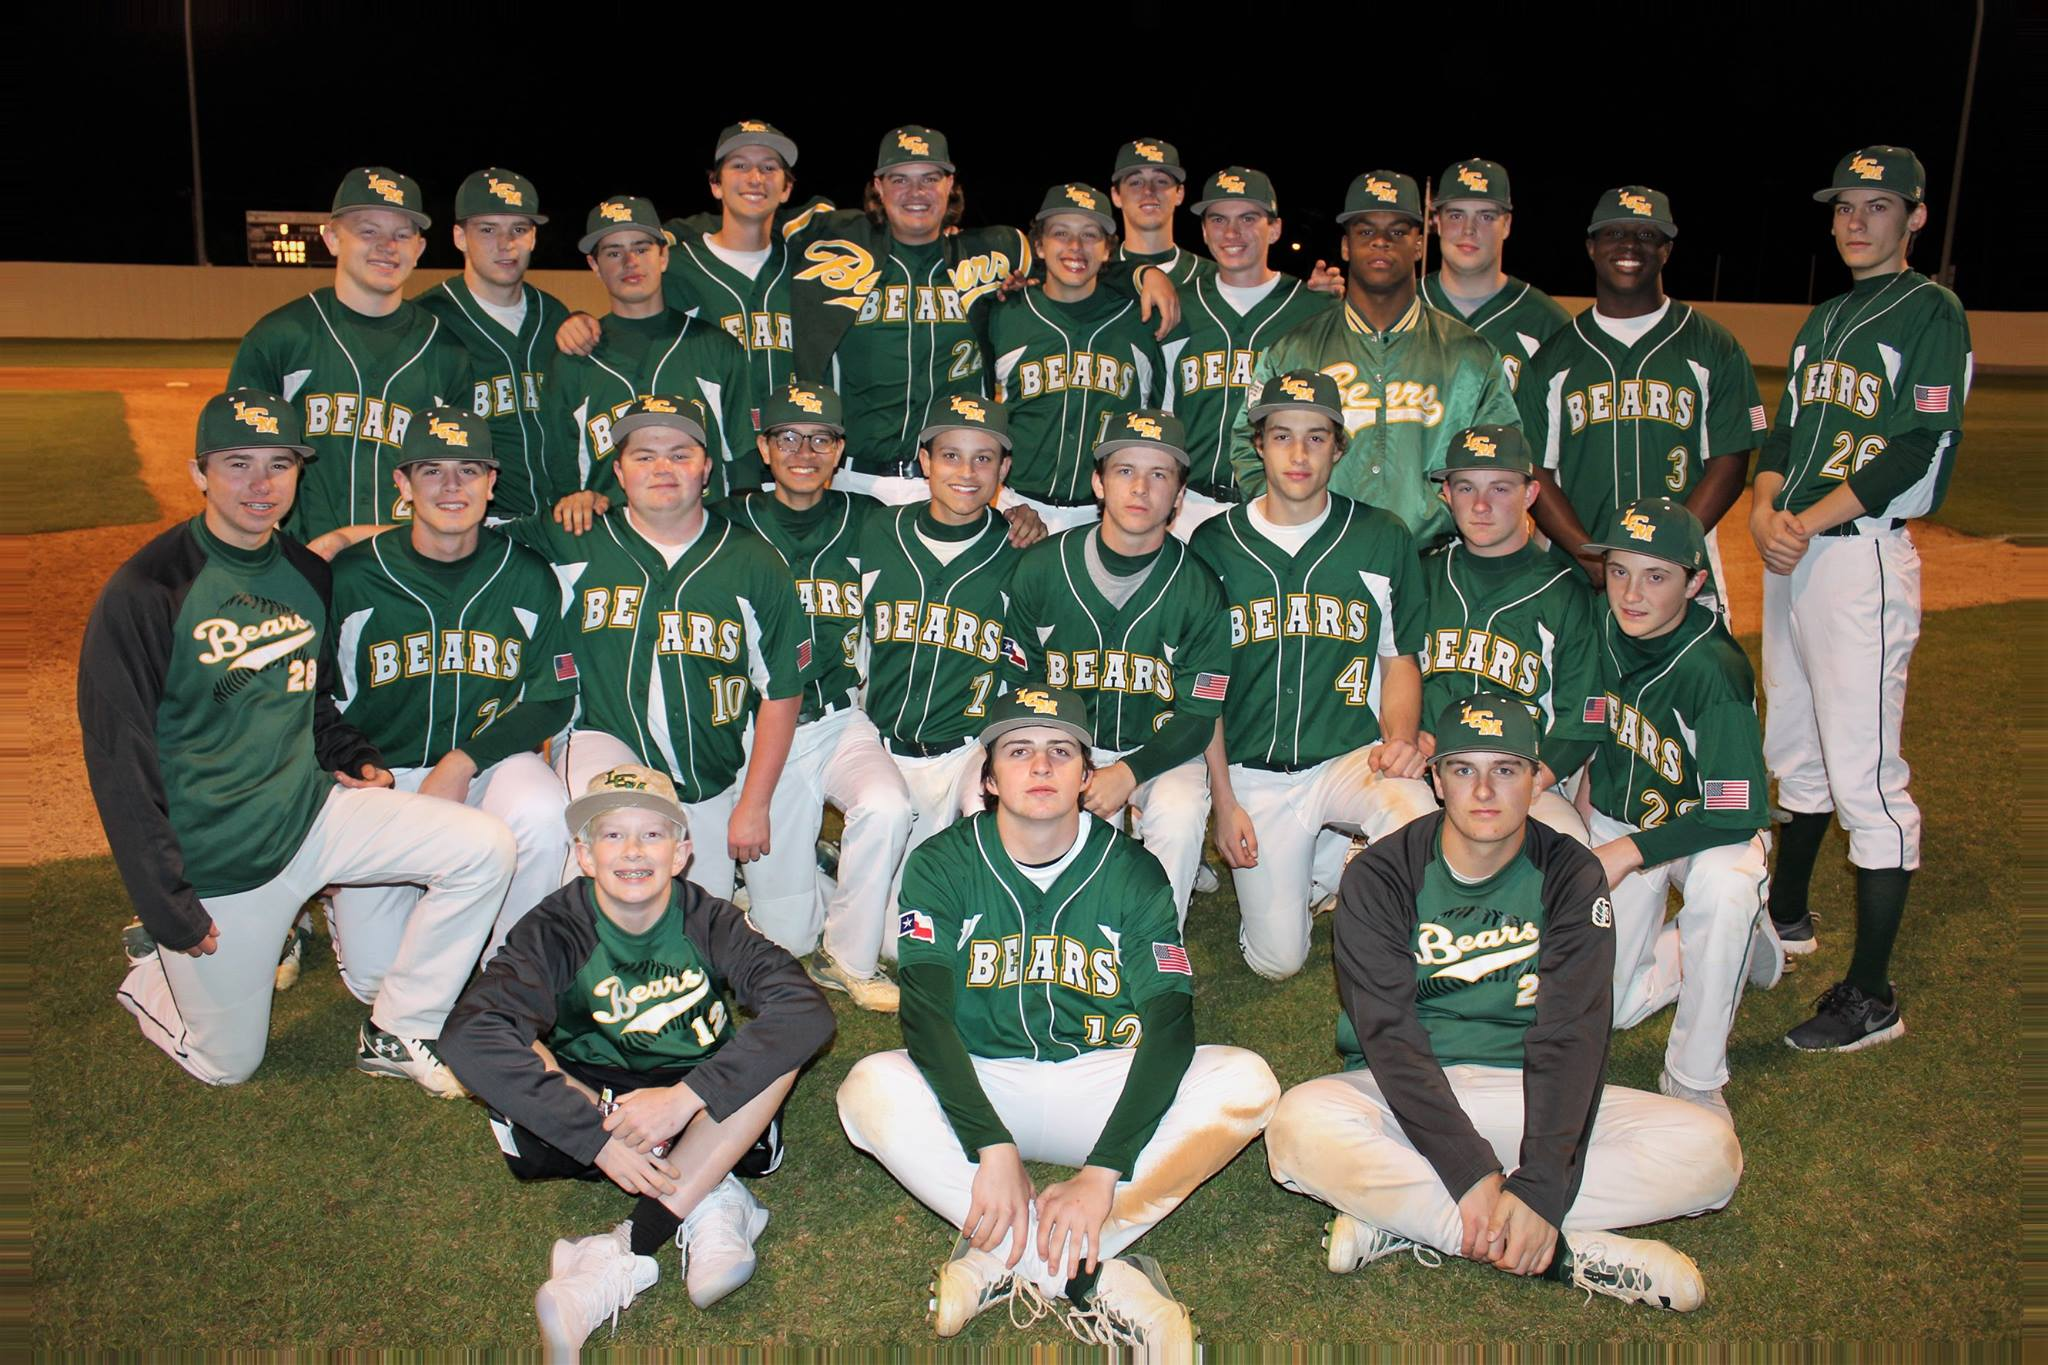 The Bear Baseball team finished in 2nd at the Howard Estes Memorial Scholarship.